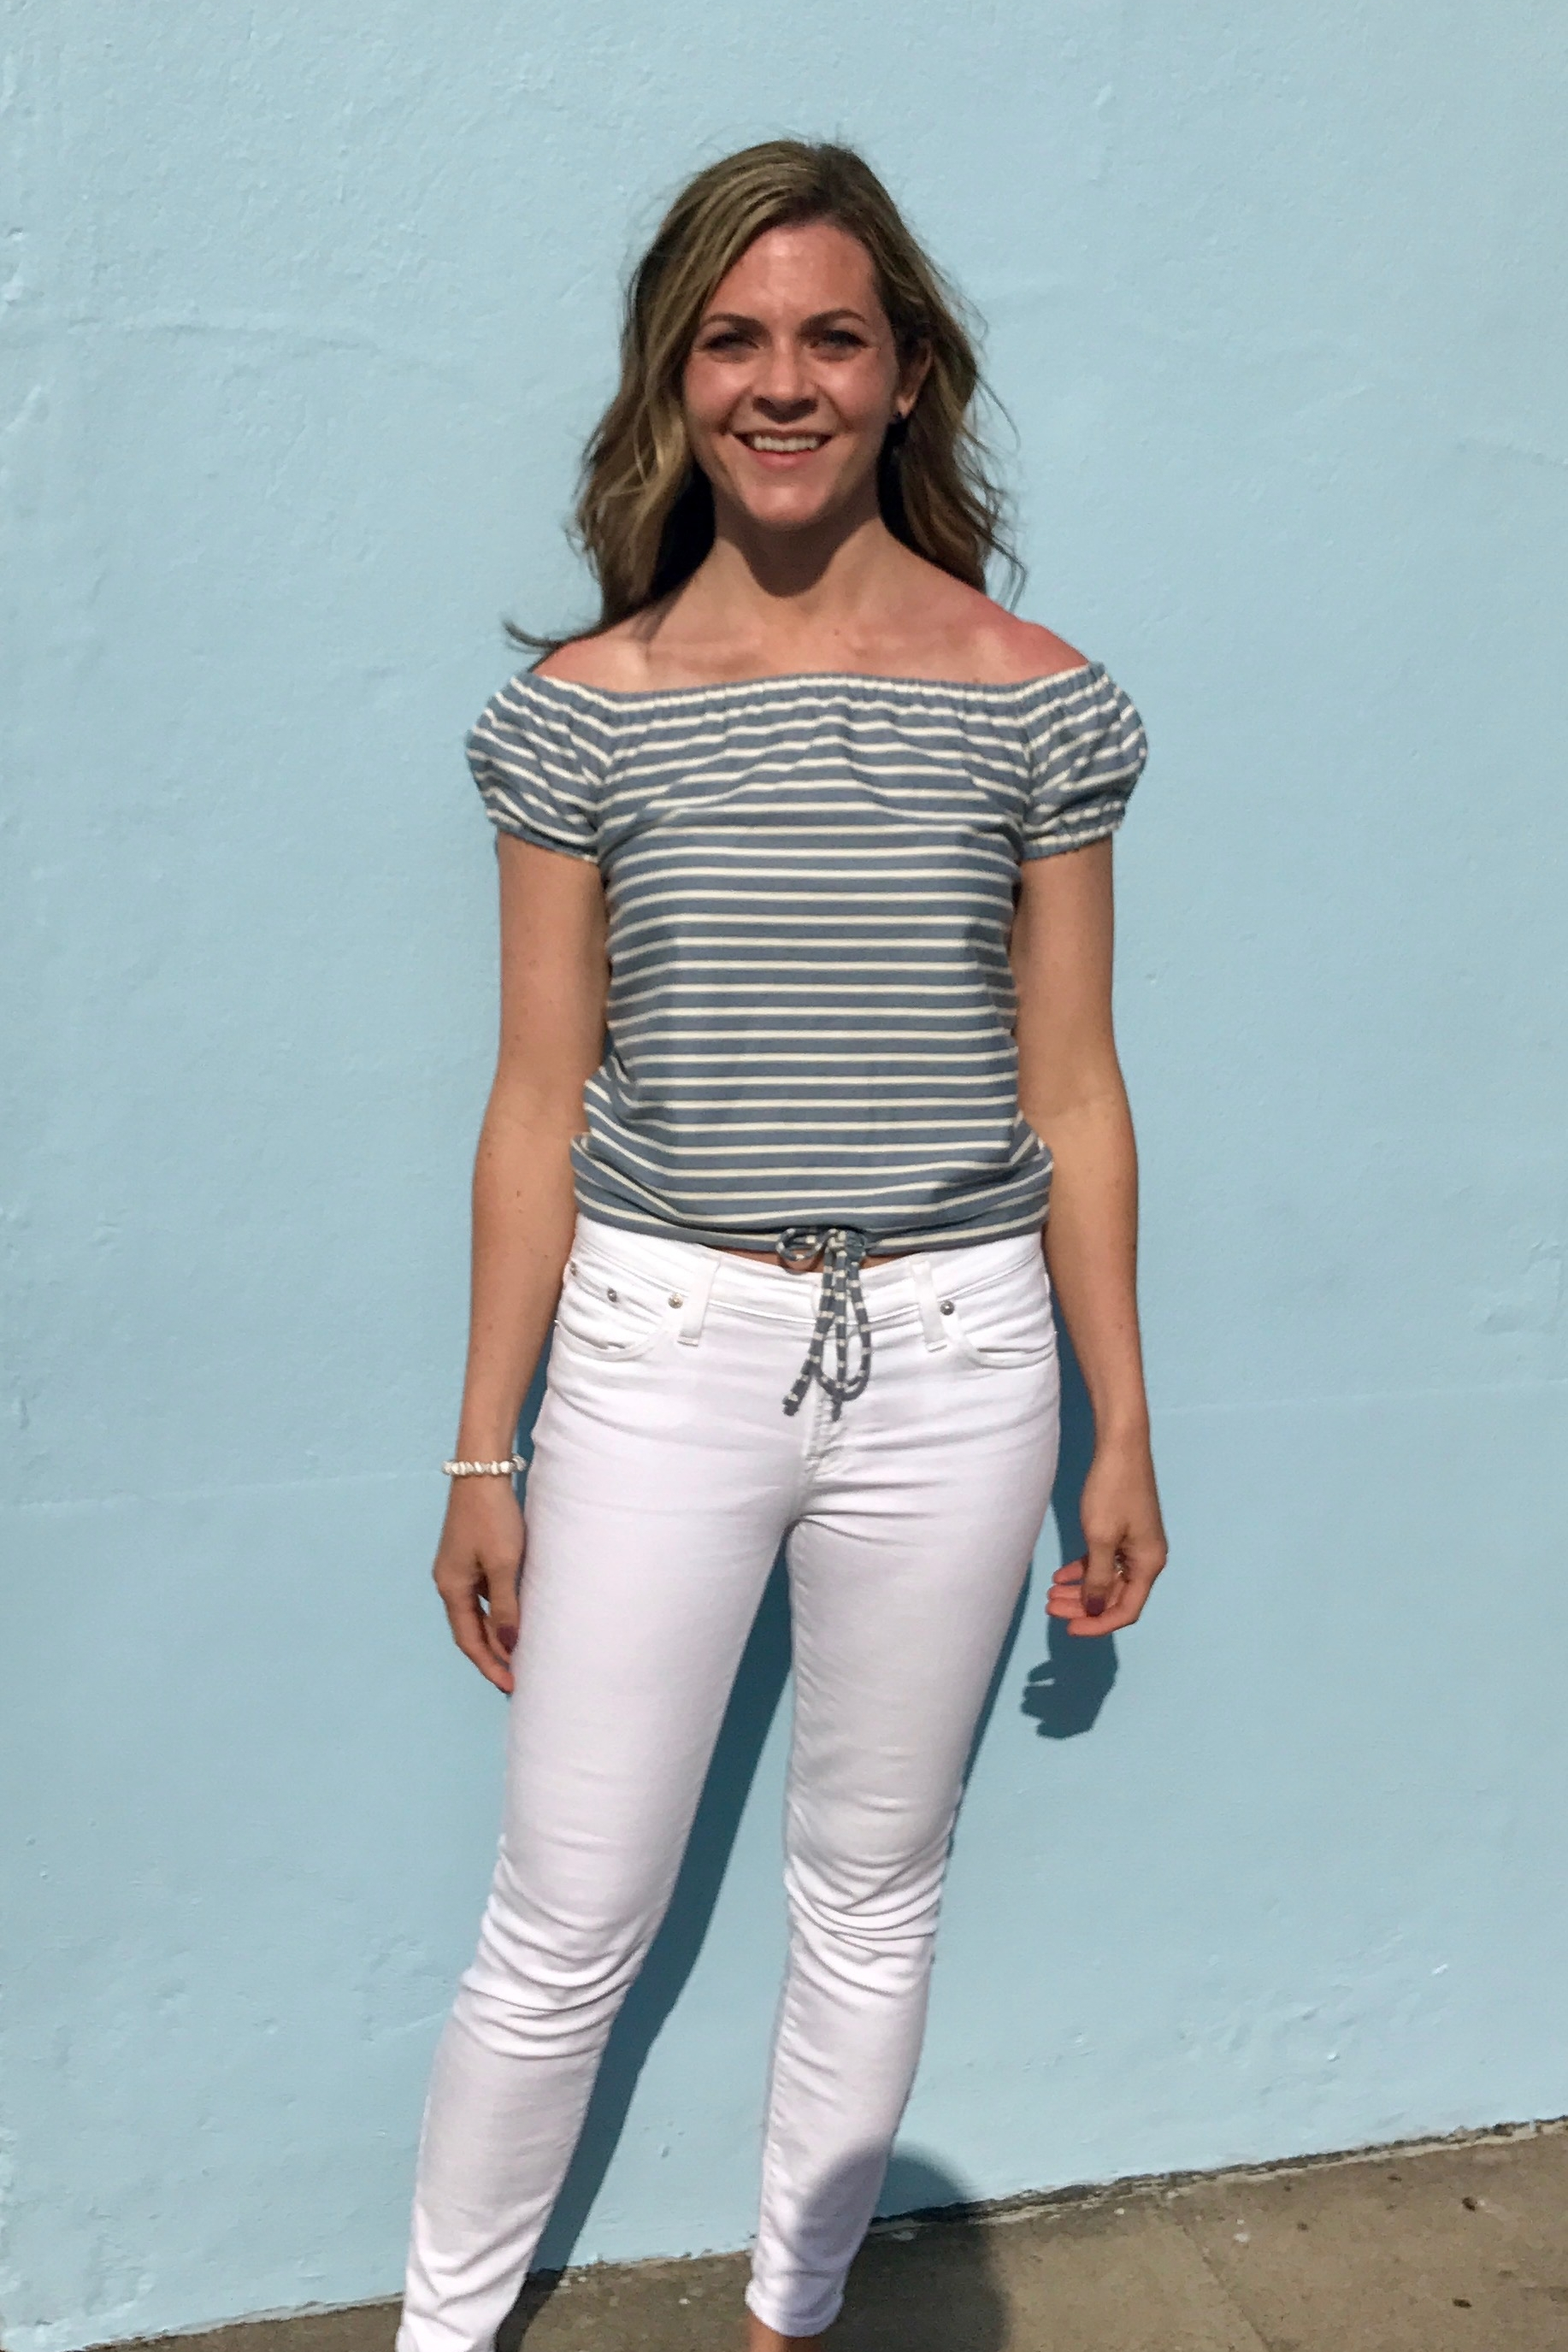 Very sunny evening in Hamilton. I had to get a picture in front of a pastel blue wall.